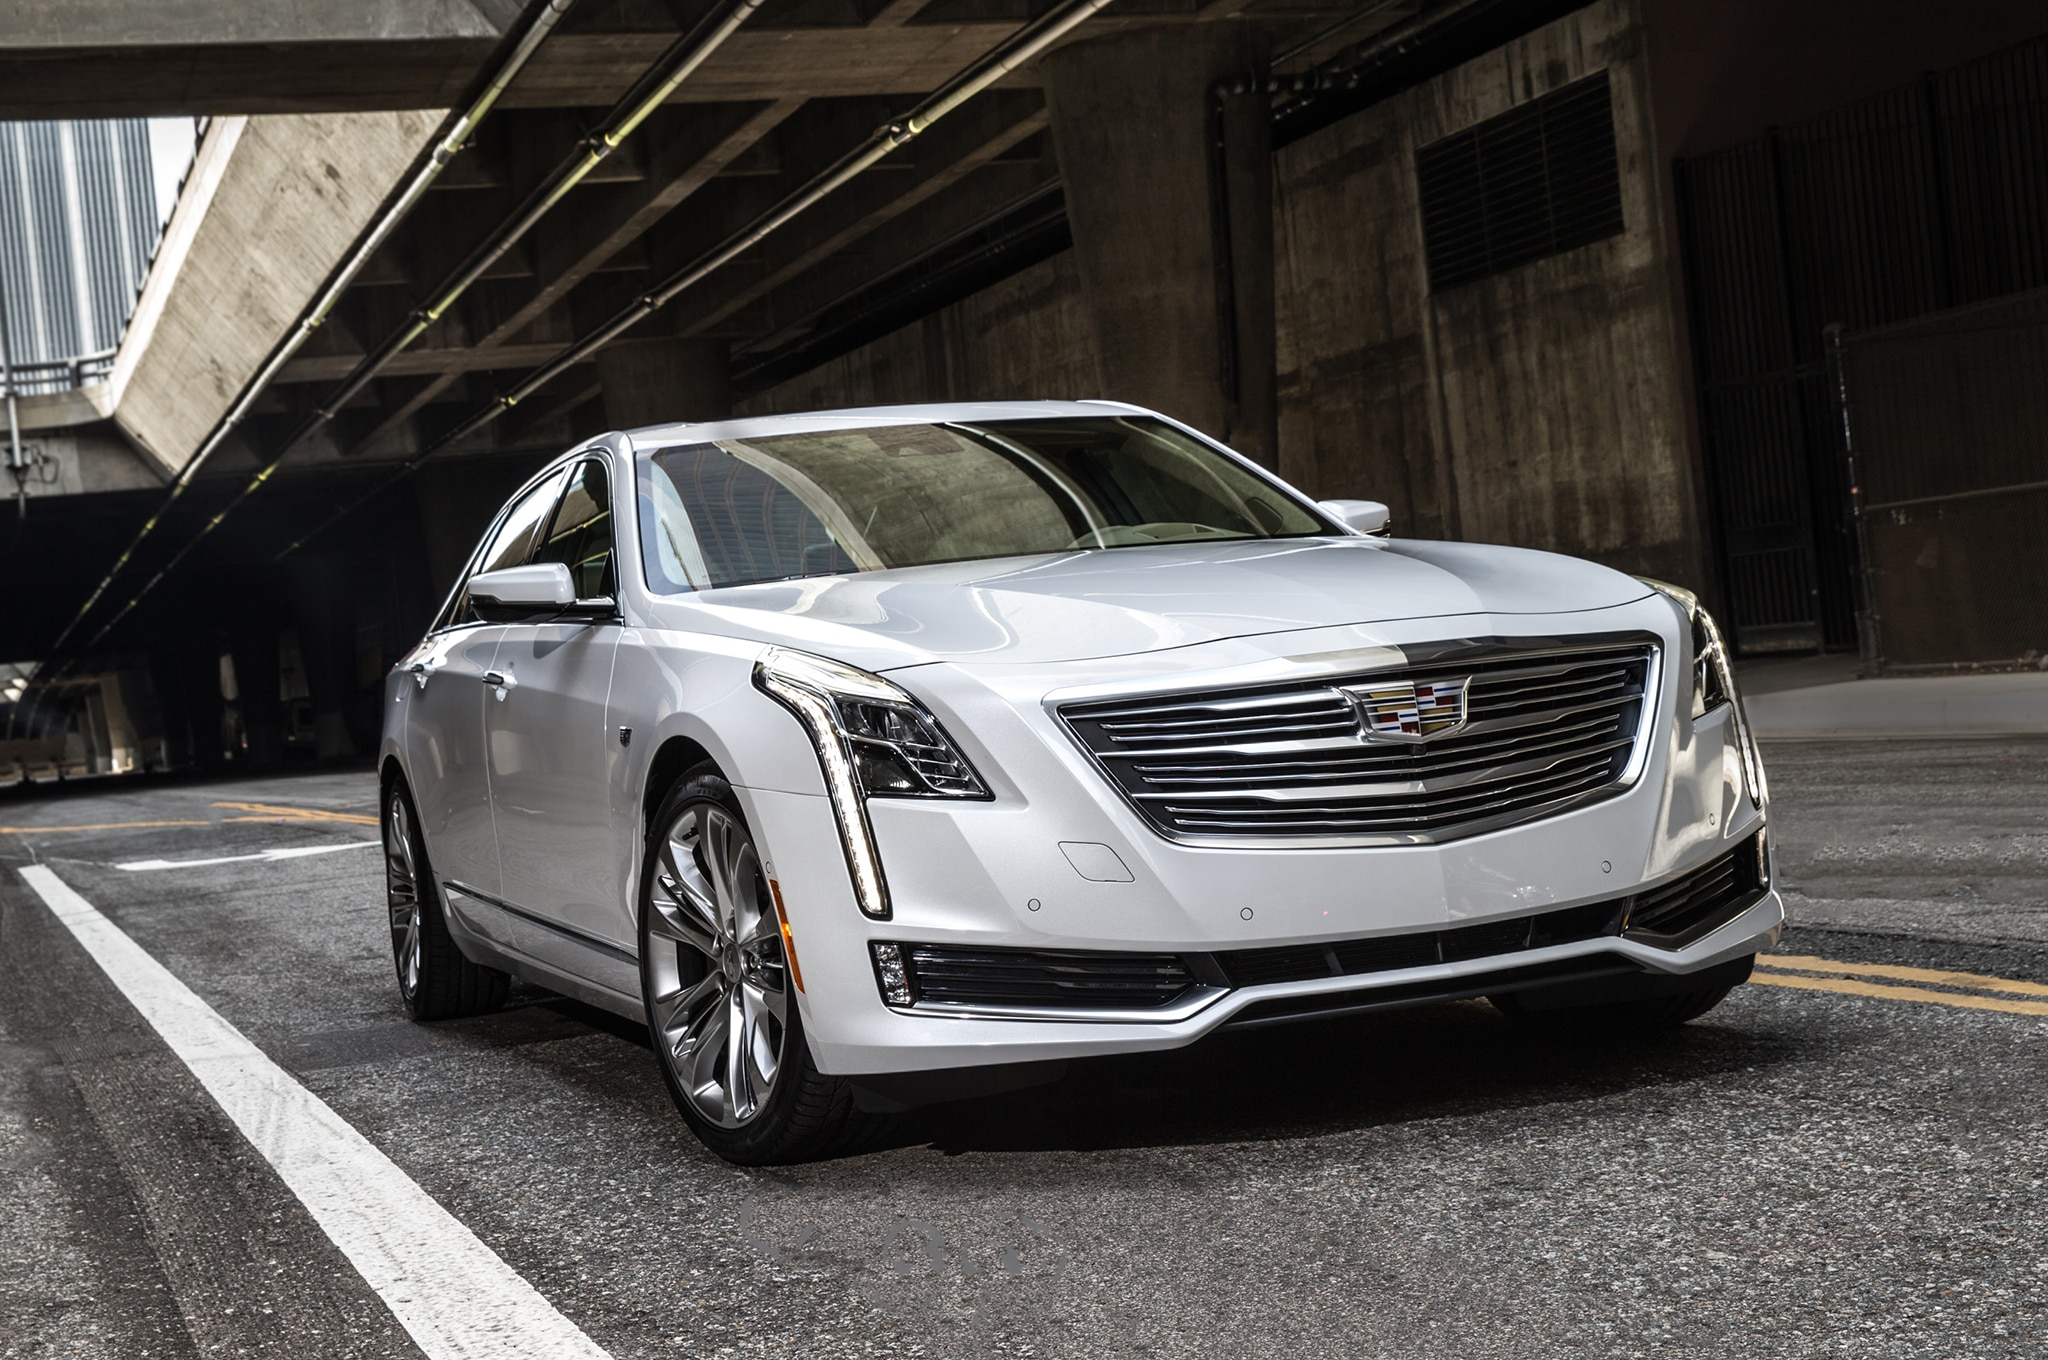 Cadillac CT6 Plug-In Hybrid Will Be Imported to the U.S. from China